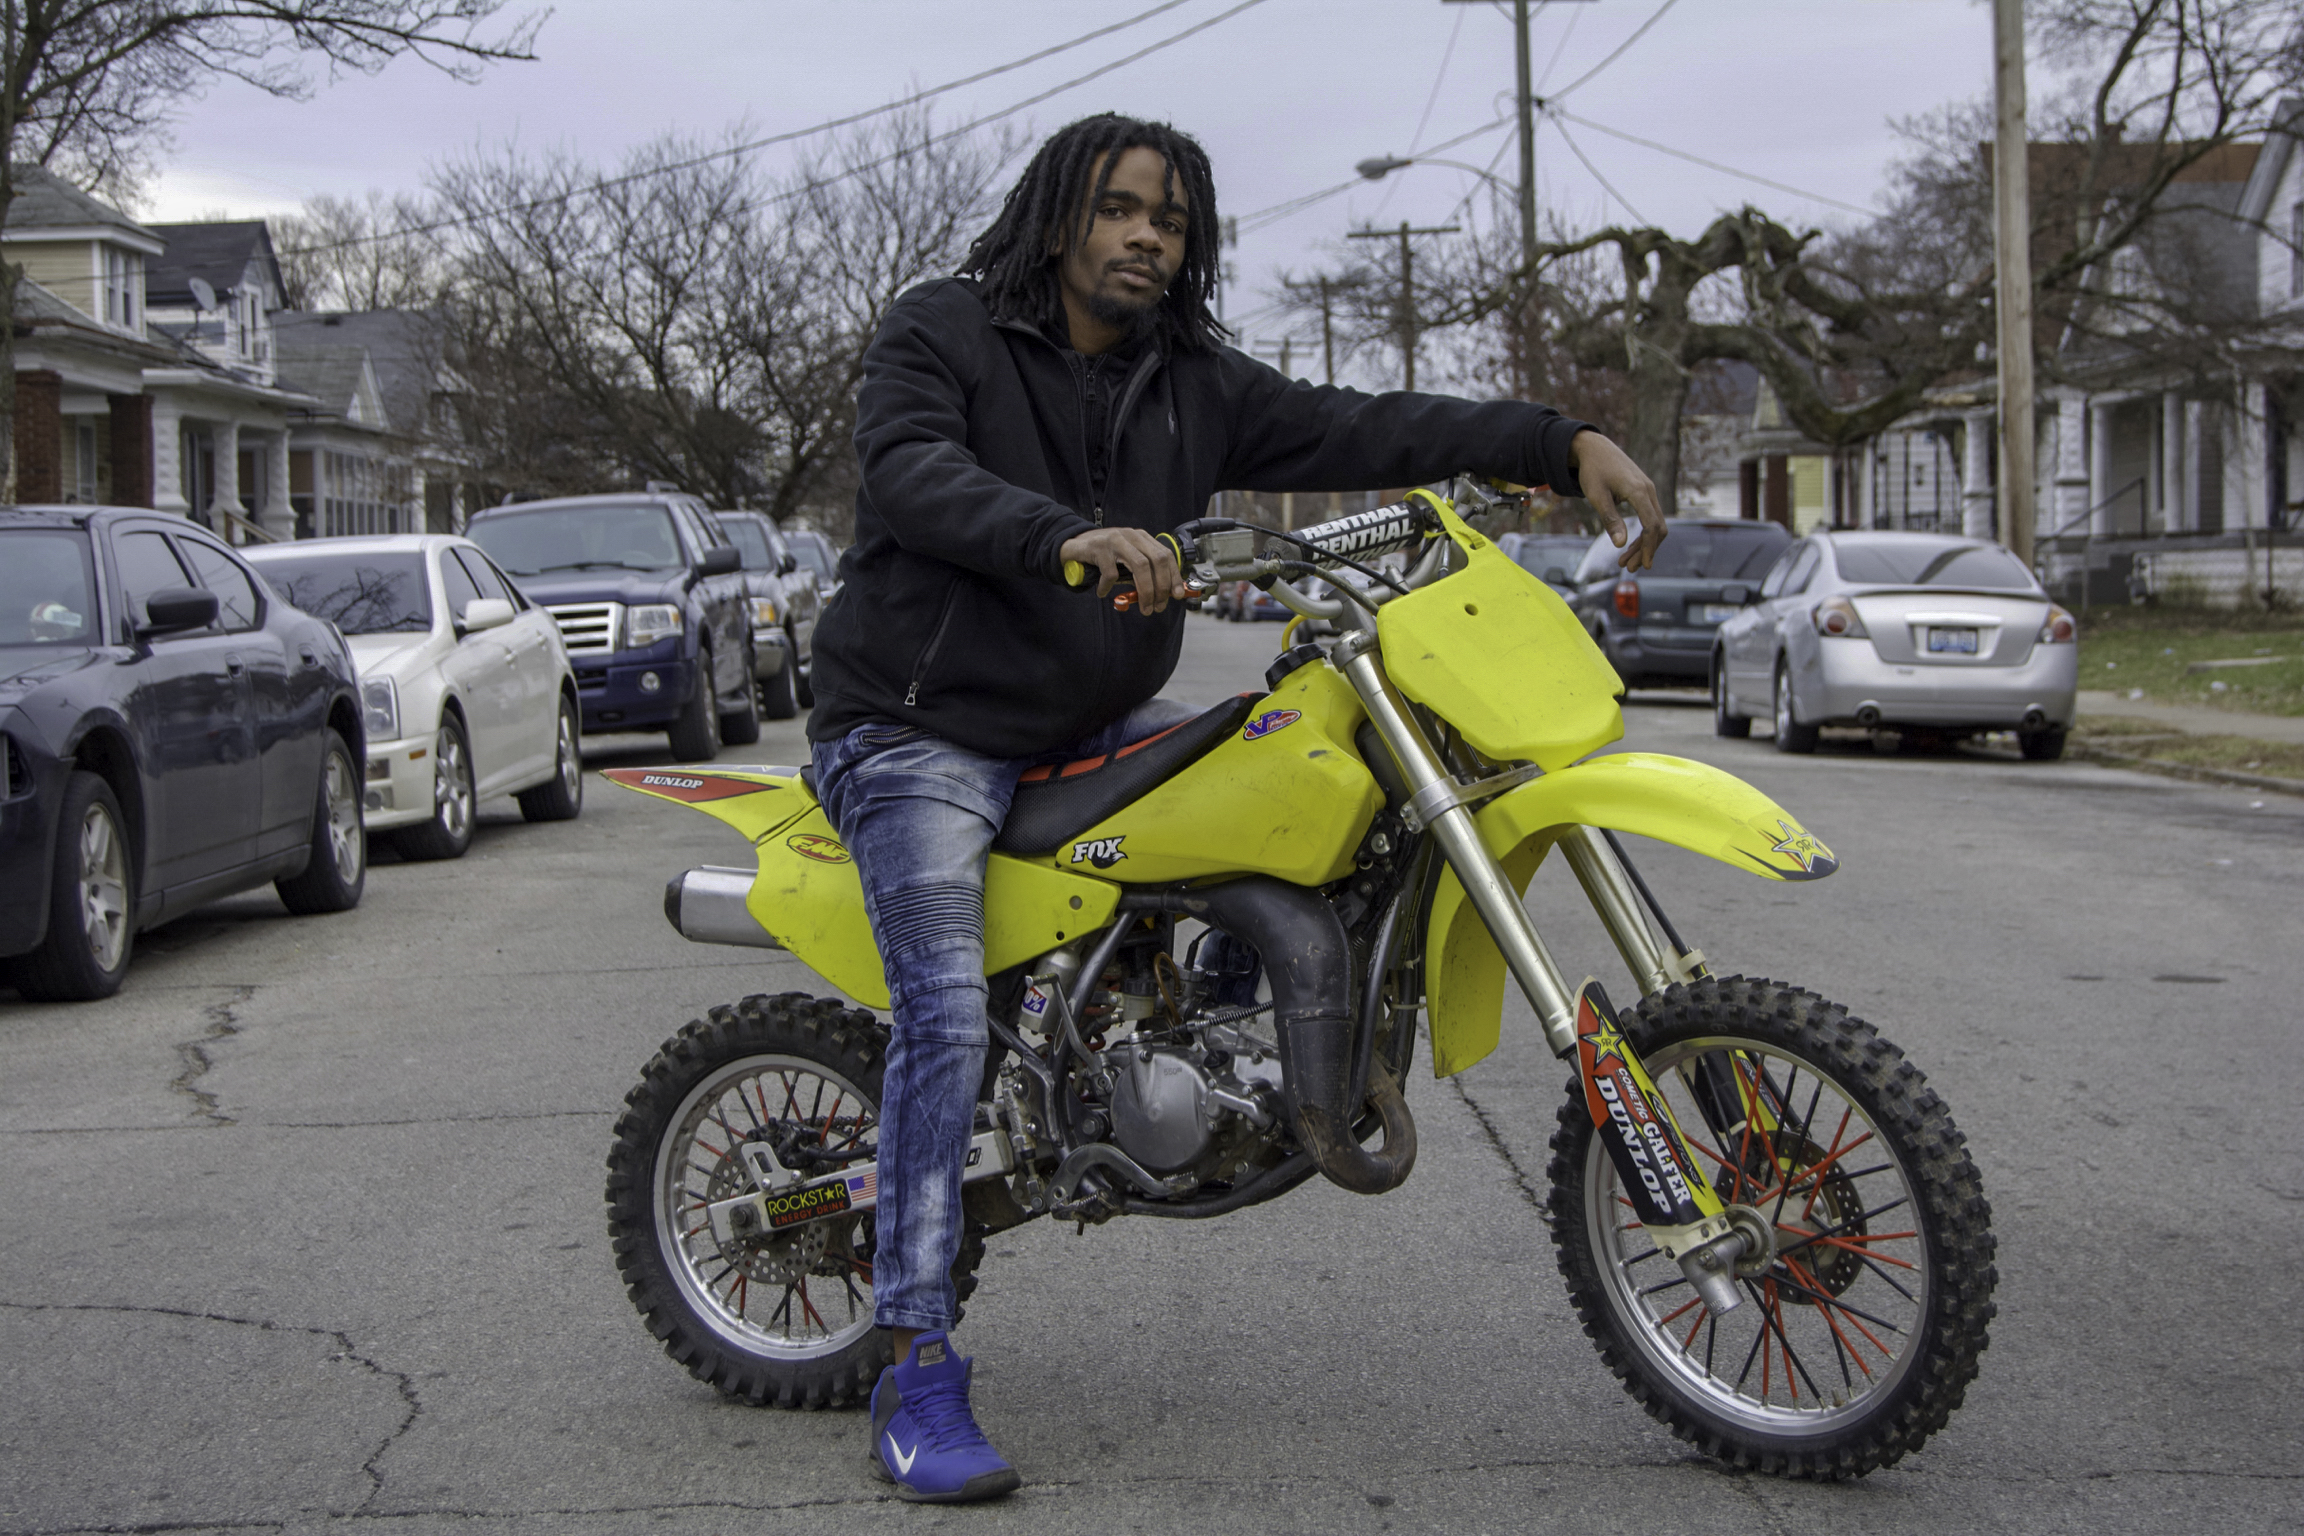 """""""I'm just trying to promote bikes. If you get on one of these things, it's hard to get off. You ain't finna get in no trouble. I'm not looking for no BS. Basically, I just want to see more people in my neighborhood rides dirt bikes and hopefully, get us a trail over here, one day. I don't wanna keep riding on the streets and worrying about the police. Once you get on one of these, you're not getting off.  This is definitely my passion. It started when I was six years old, when my grandma got me one of those small dirt bikes. When I saw the older kids with their bigger dirt bikes, I always wanted one. The older I got, I would spend my money and buy a bigger bike. I just bought this bike. I just lost a bike, last year, and broke my leg. My leg was broken and I bought another bike and I rode with a broken leg. This is my passion. Regardless, I'm going to ride a bike.  I'm not doing nothing else. It's not like I'm out here, doing anything bad. The police look at us like we're doing something bad but I'm not bothering nobody. You got cars with mufflers and all extra types of exhaust modifiers and stuff. I don't come out late at night or very early in the morning; the afternoon is good for me. I don't bother nobody, man.  I want everyone, around me, to ride because it's boring doing it by yourself. I want to start my own garage and work on them. Once you get everybody on it, I'll get you running for free but after that, throw me a little something and I'll work on your bike. I want to get me a little garage. We don't have nothing down here that will fix this. I gotta work on this by myself. There's no where, around here, that I can take this bike to. There's not one professional place for it. I gotta do it myself.  Find you a passion. If you find a passion, you'll stay out of harm's way. If you find a passion, you're gonna wanna do it all the time; it's like an addiction. You're not worried about nothing else going on around you. When I'm flying through these streets, I'm"""